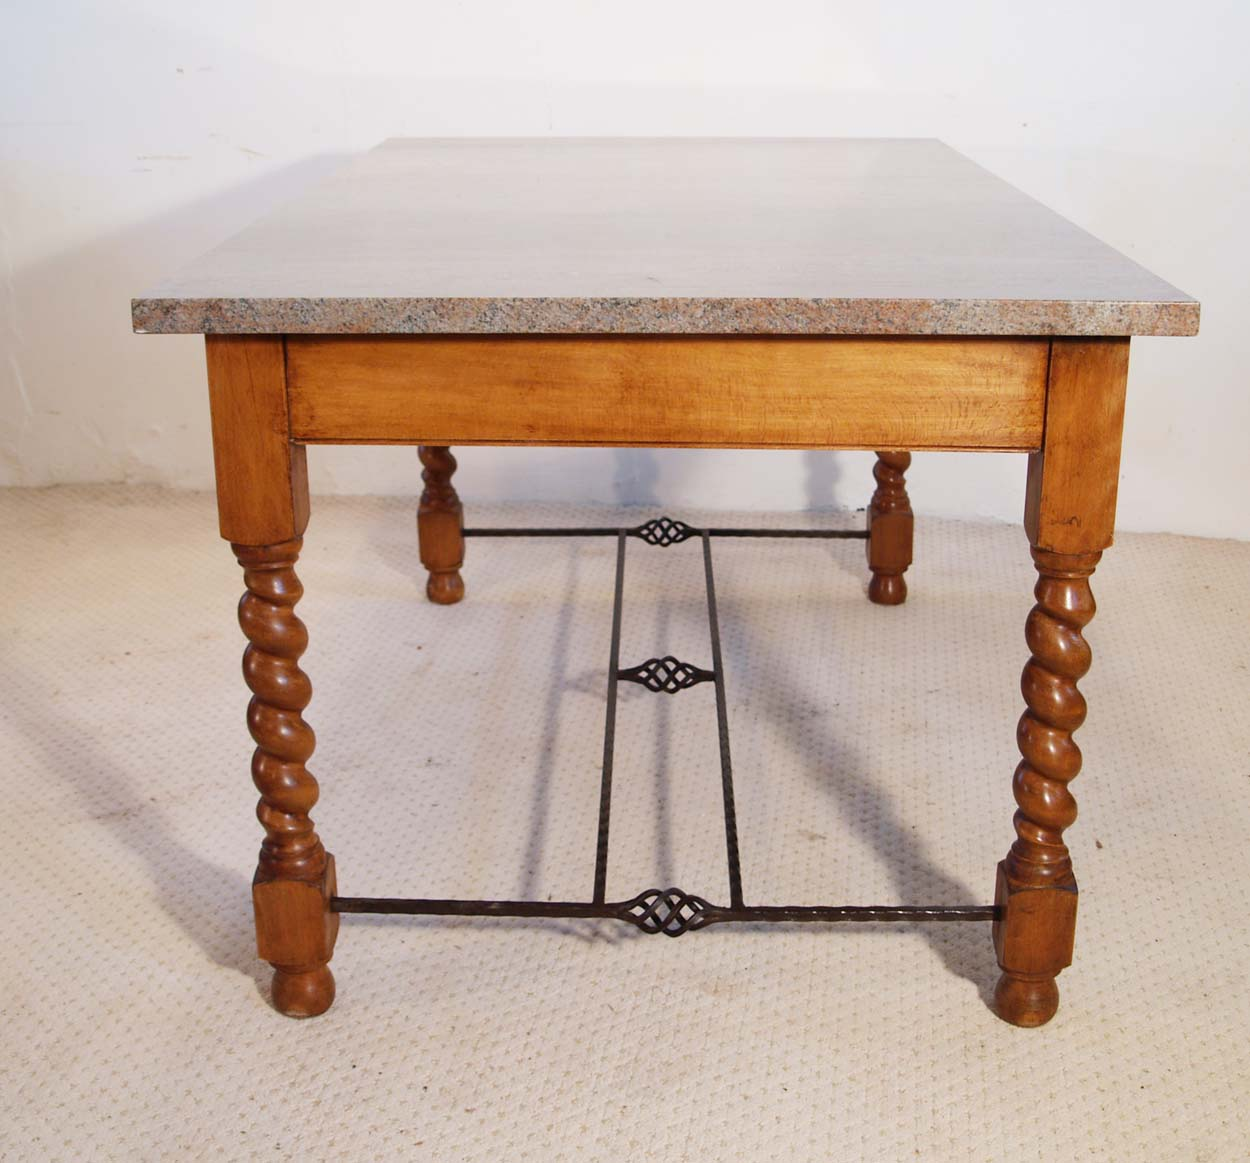 English Vintage Stone Top Farmhouse Dining Table, end